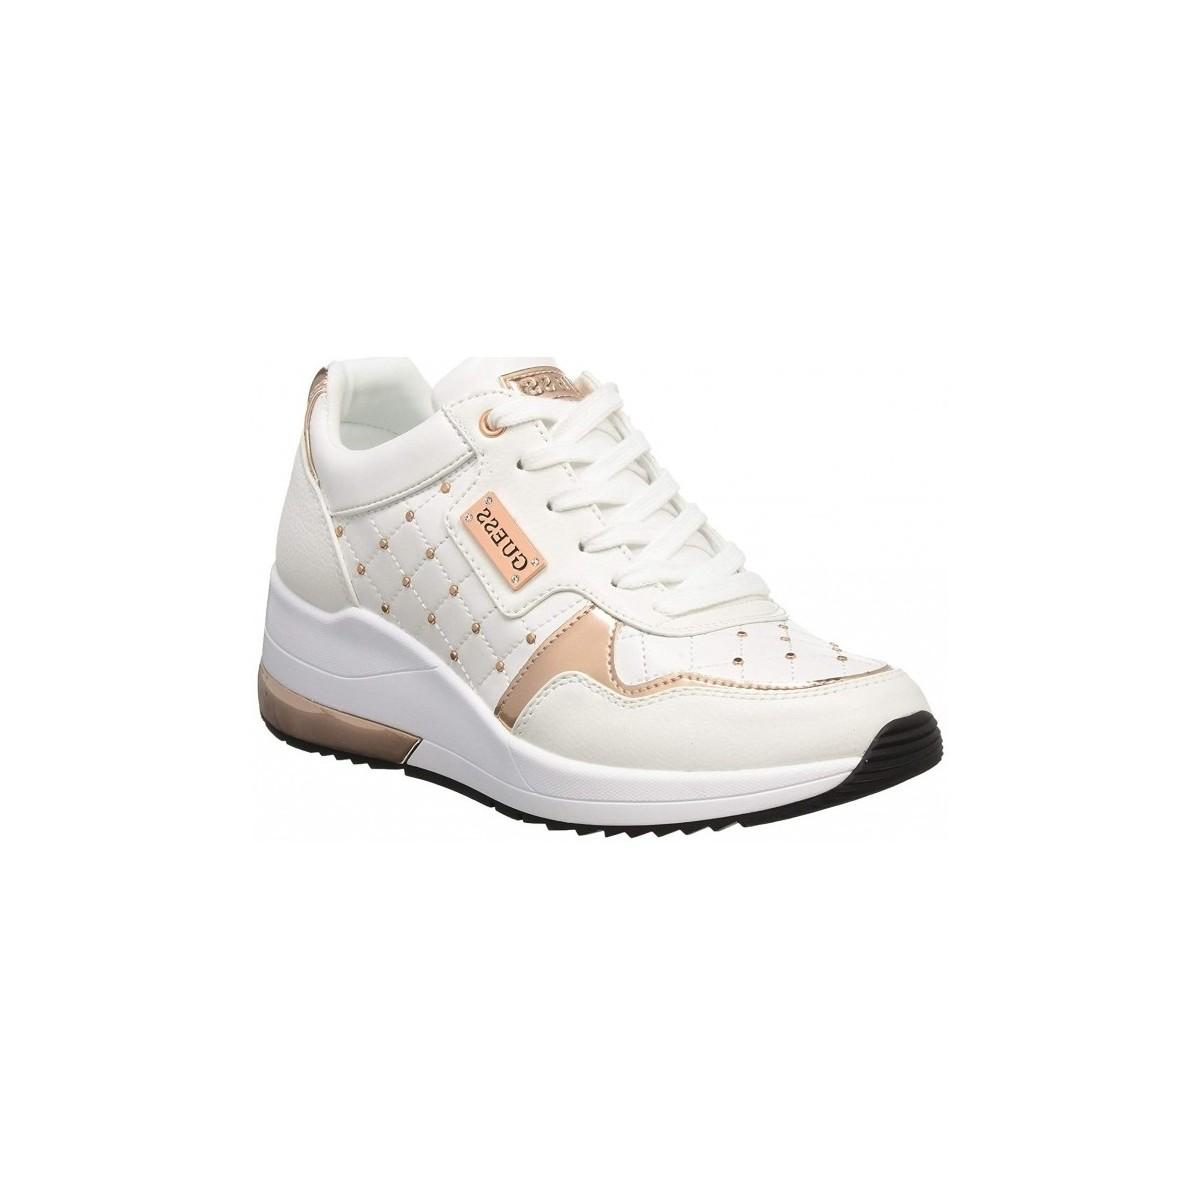 Guess Chaussures Chaussures Femme Femme Guess Galeries